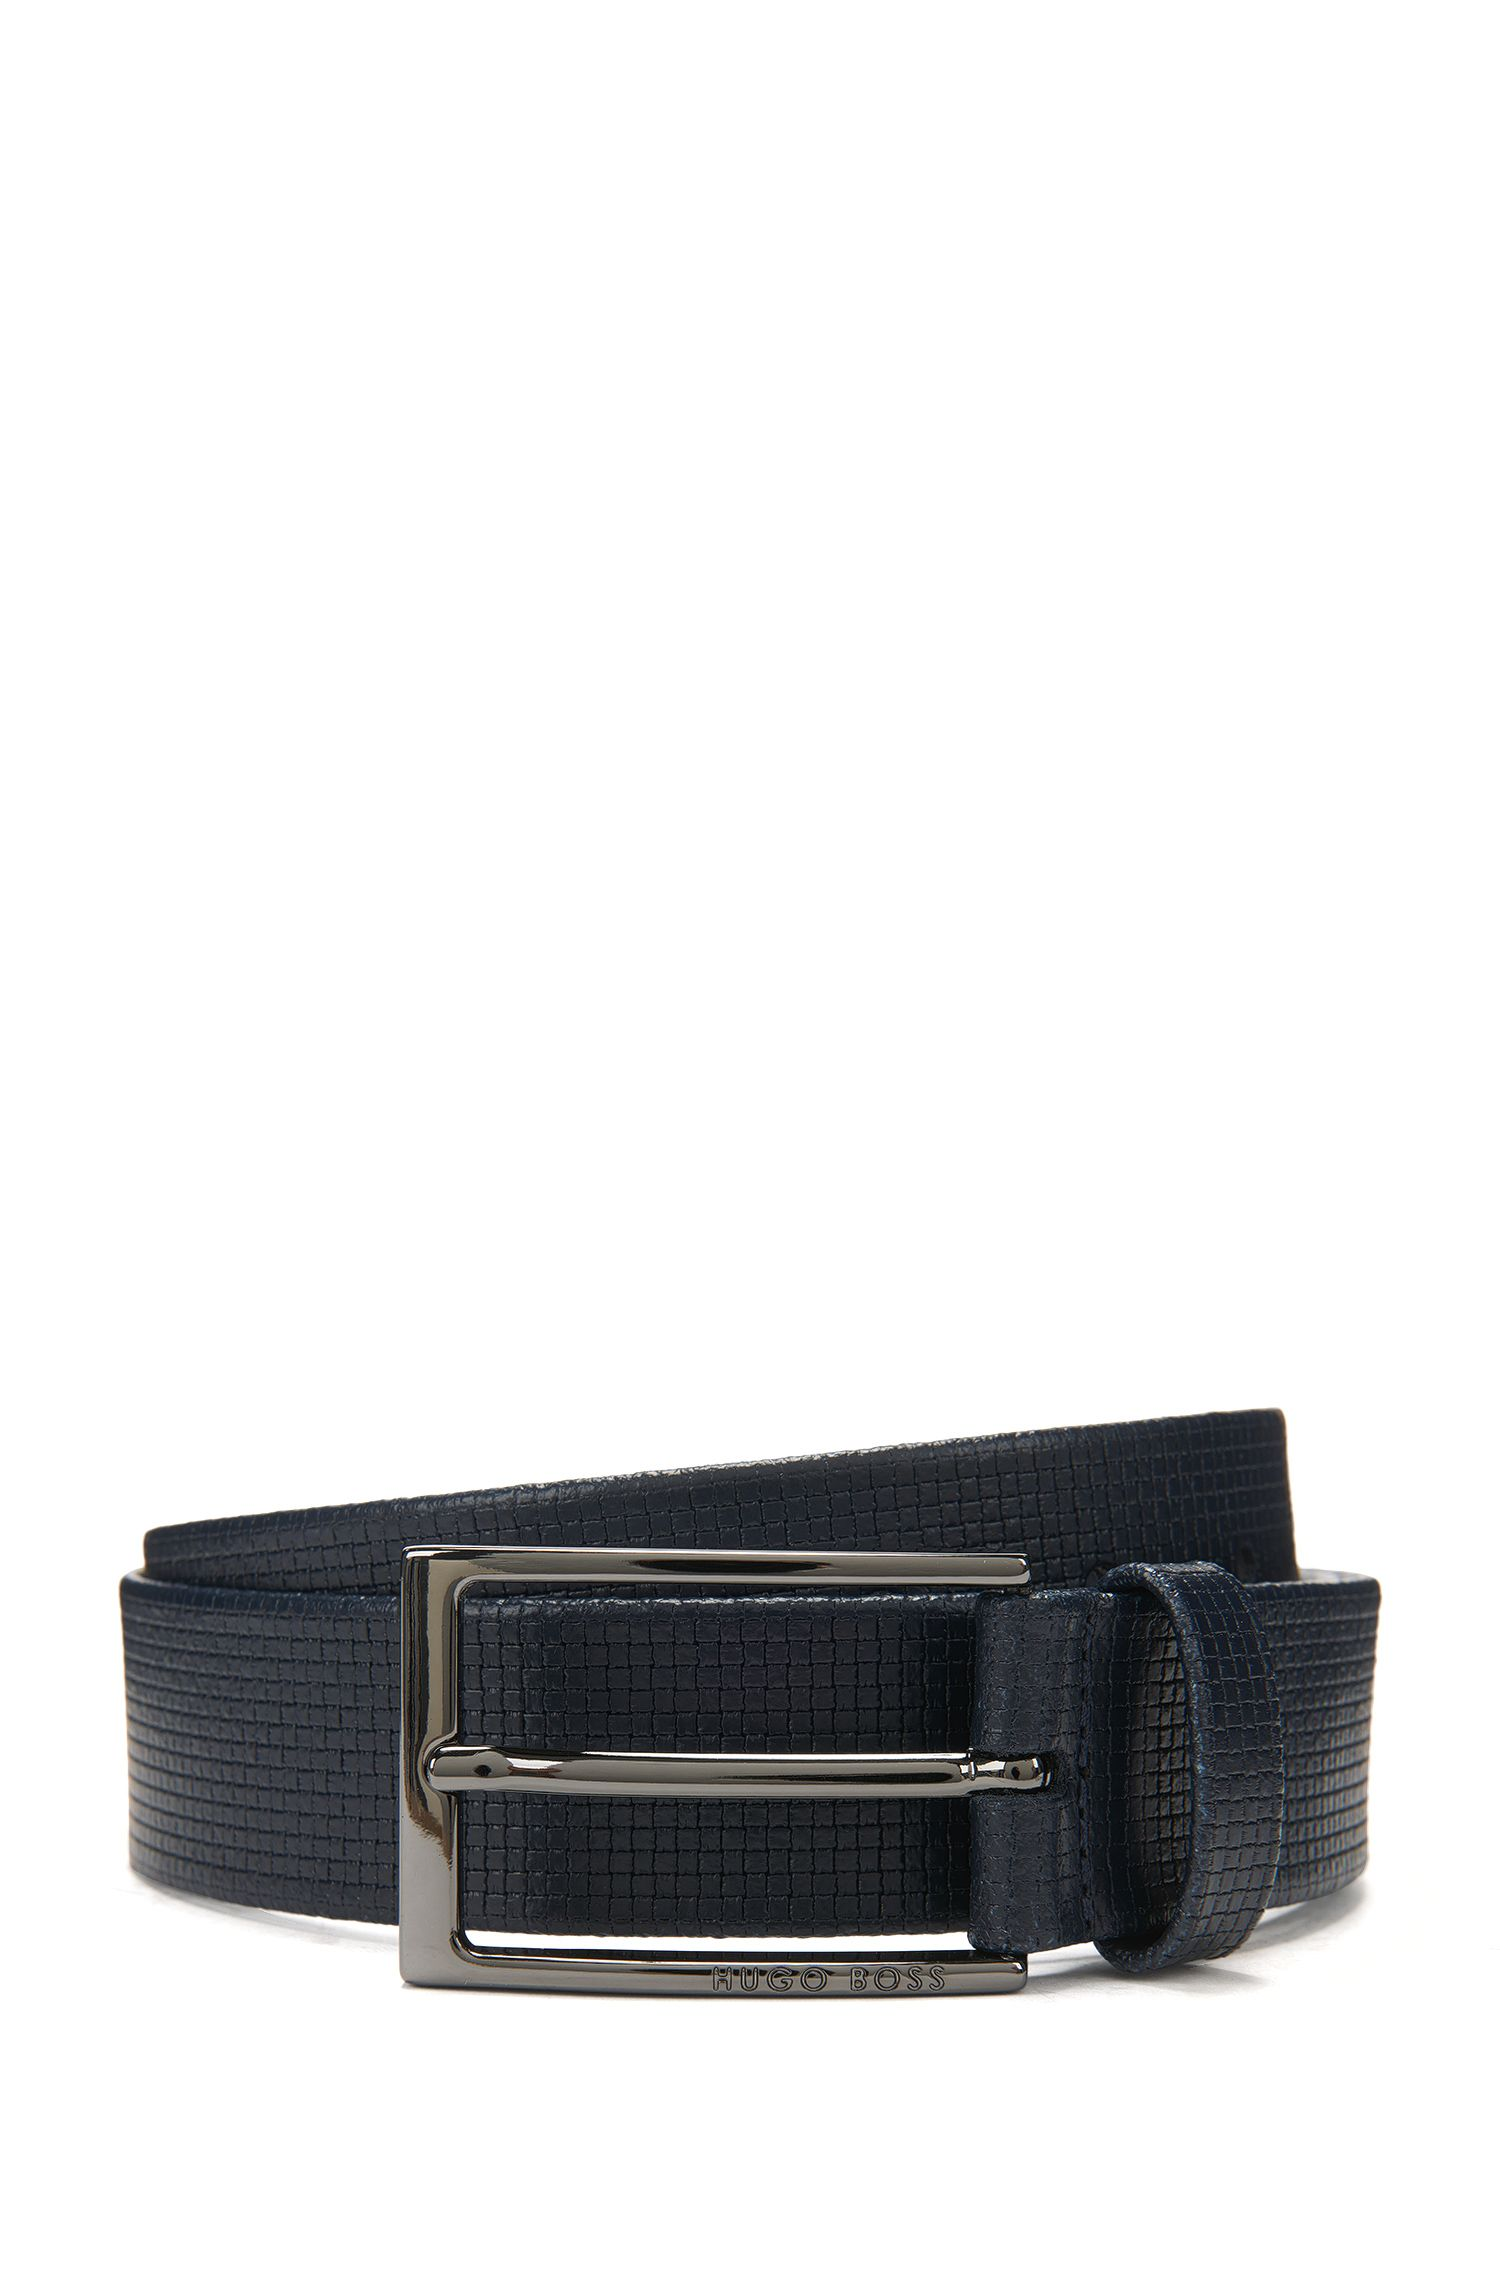 Basketweave-Embossed Leather Belt | Clauxy